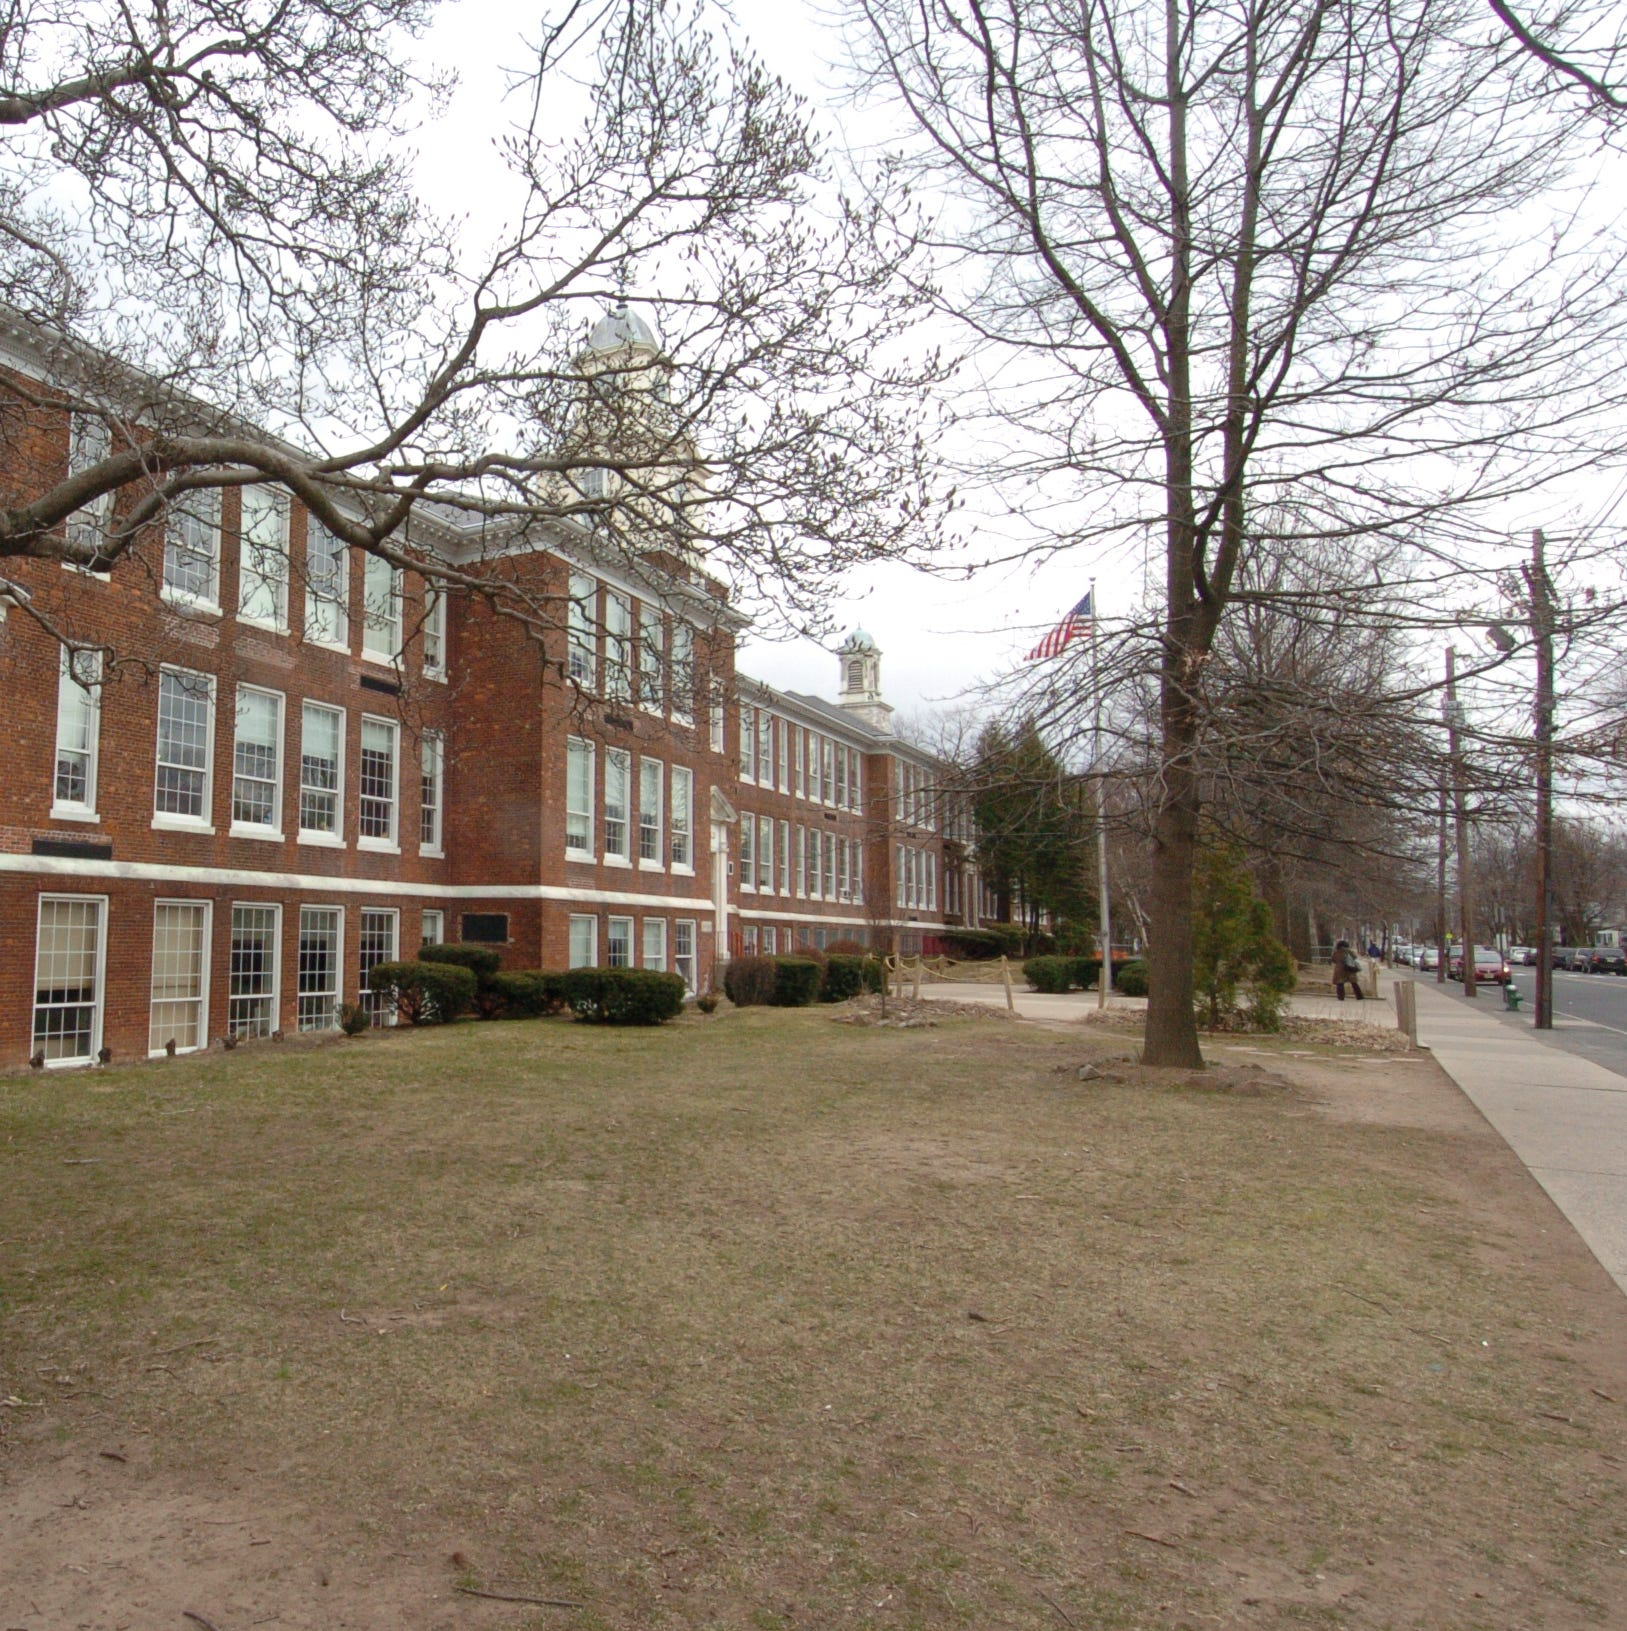 Explicit photo sent to Montclair student falsely attributed to teacher, officials say